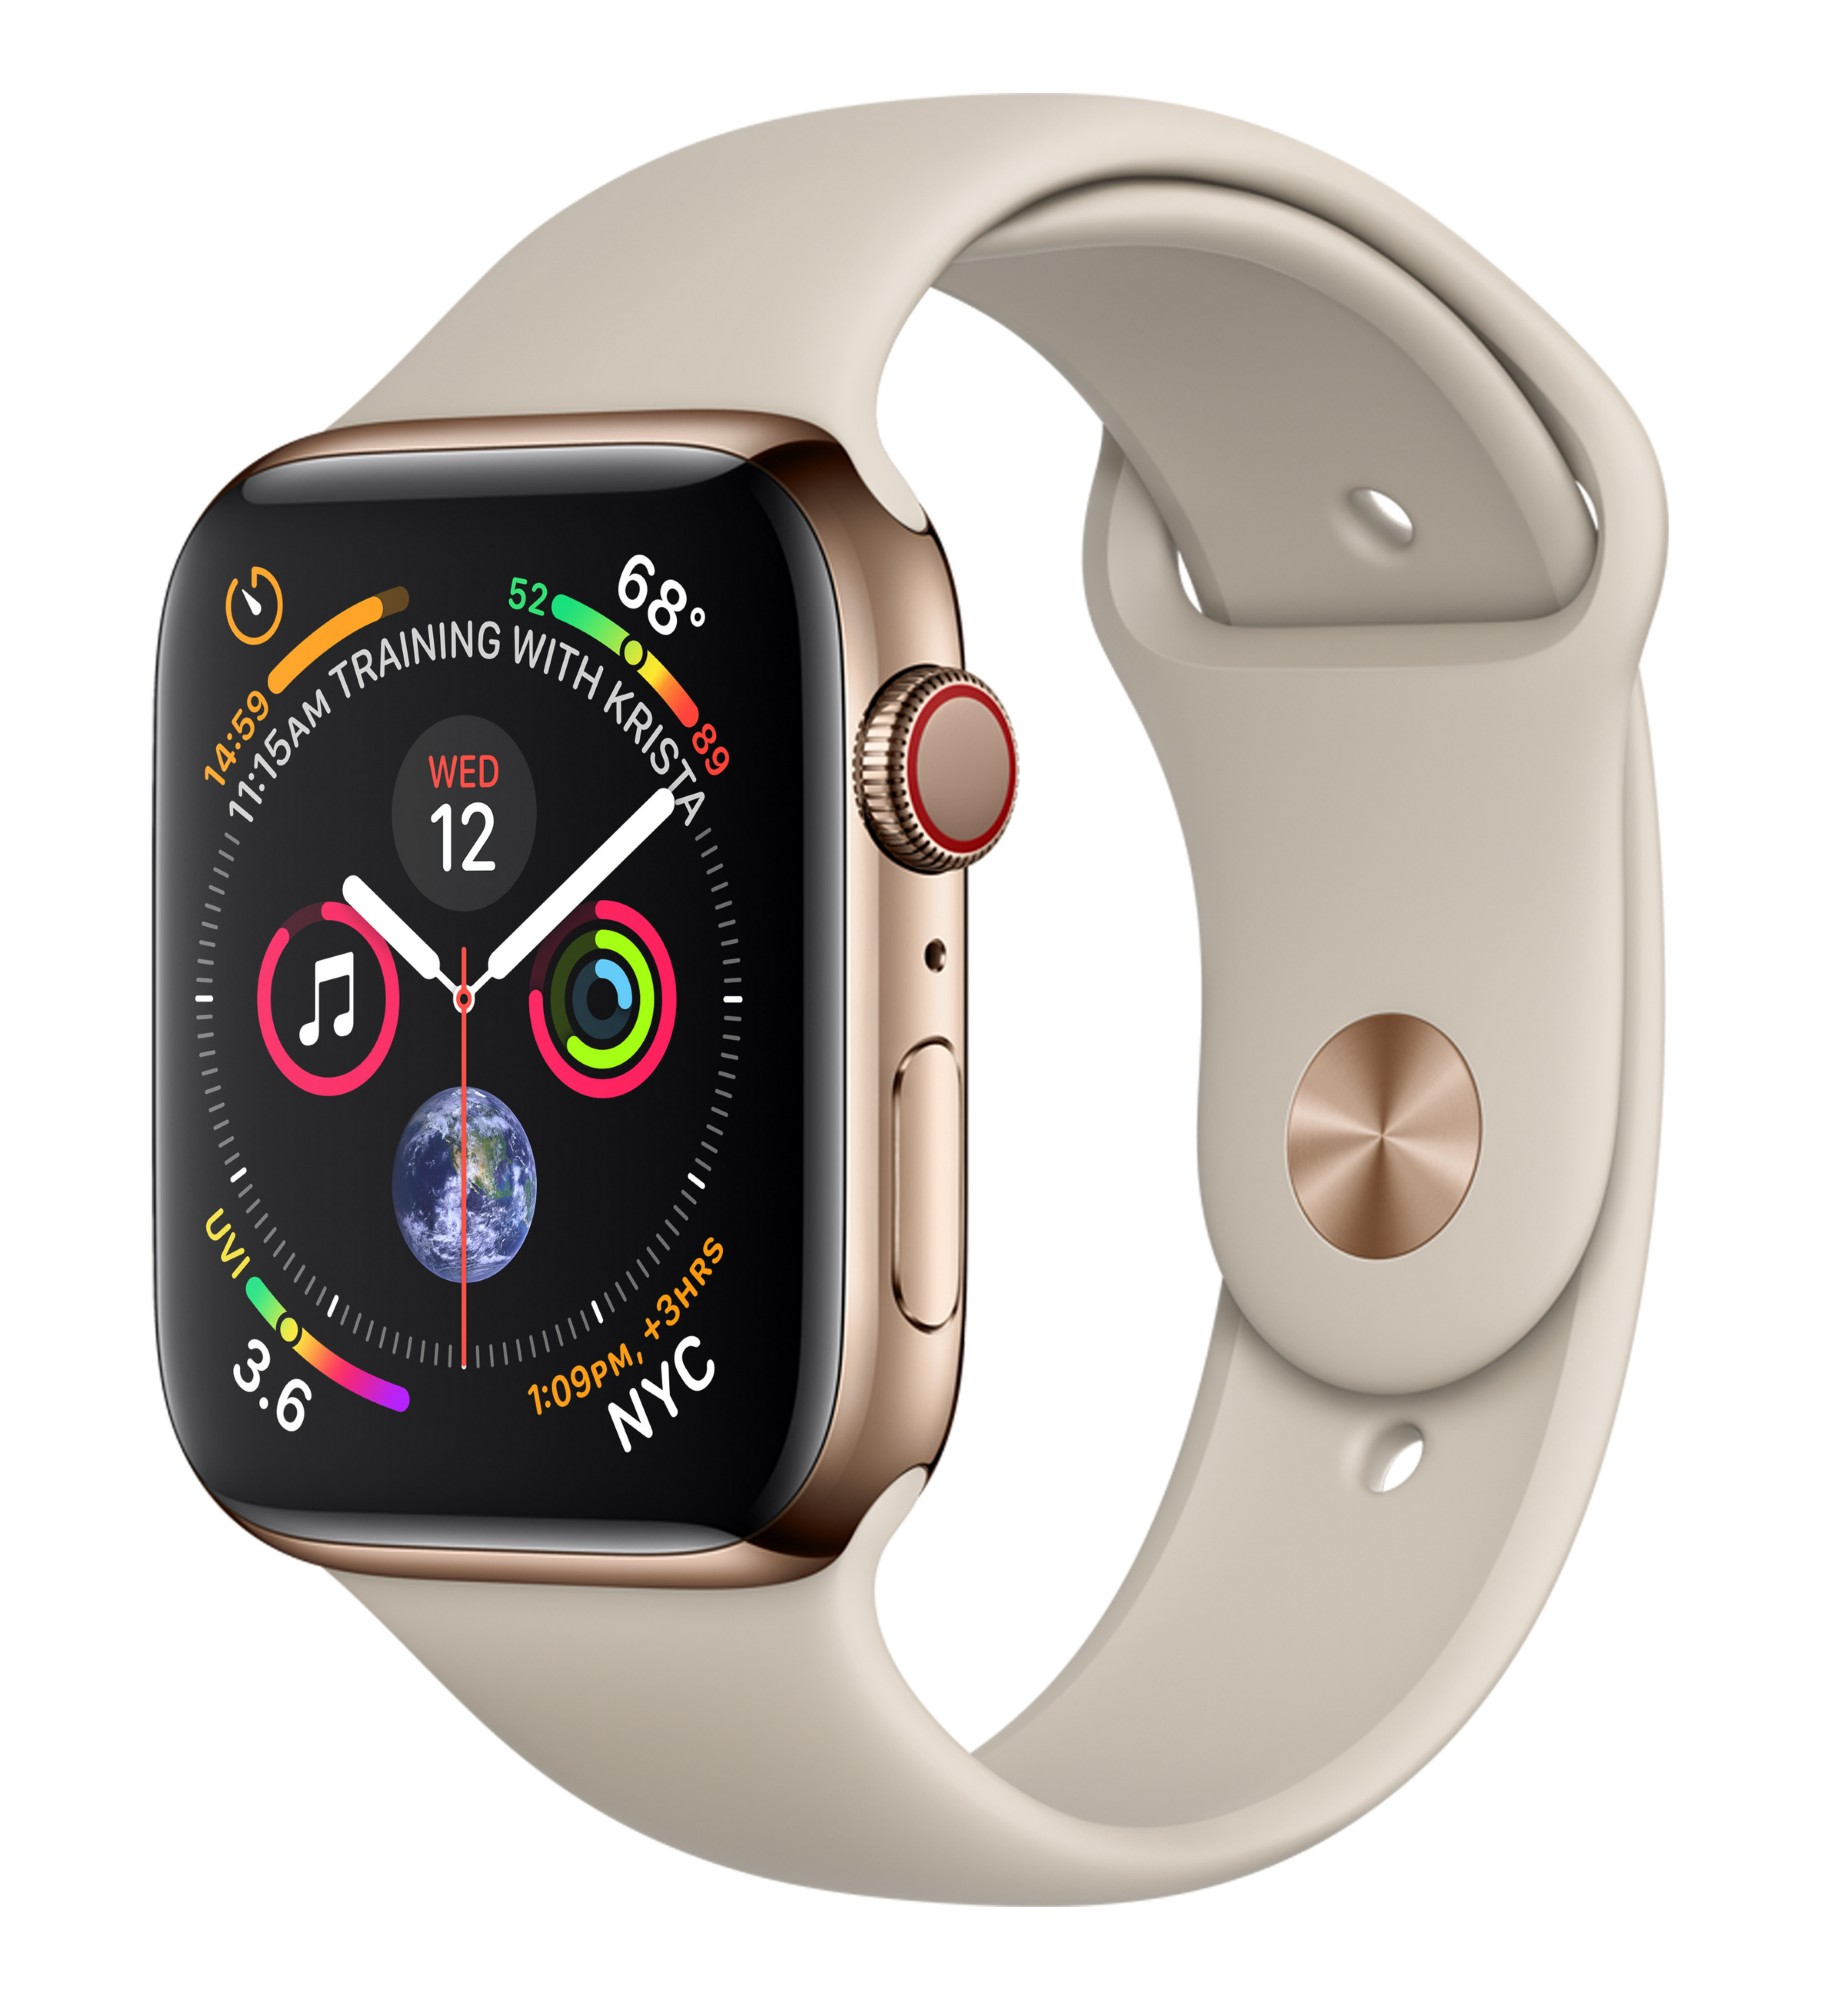 APPLE MTX42B/A WATCH SERIES 4 SMARTWATCH GOLD OLED CELLULAR GPS (SATELLITE)